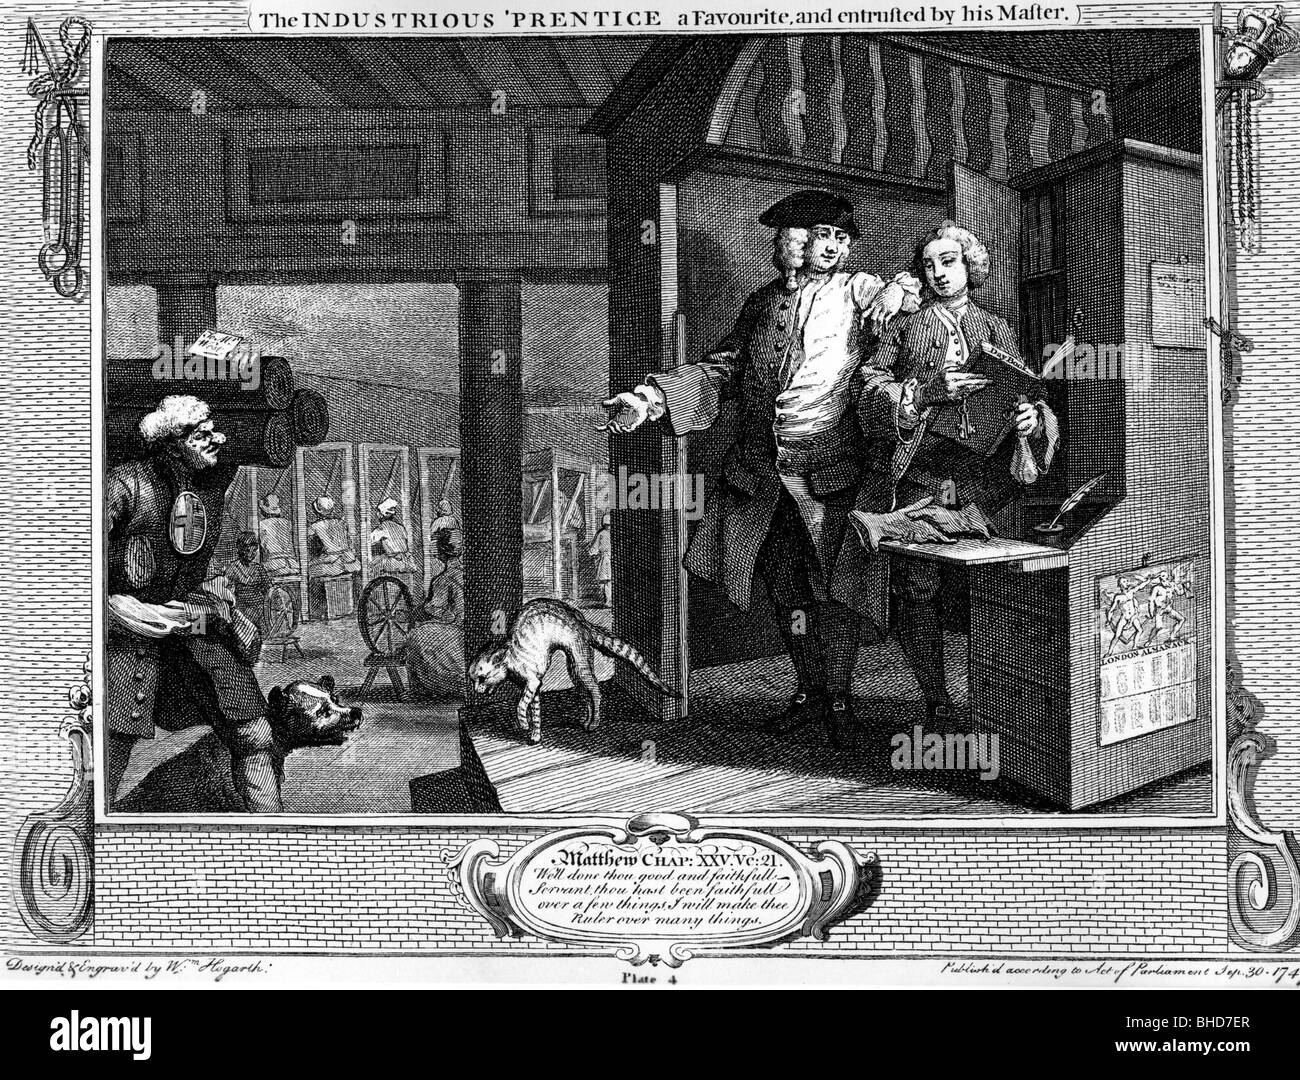 fine arts, Hogarth, William (10.11.1697 - 25.10.1764), 'The Industrious Prentice, a Favourite, and entrusted - Stock Image